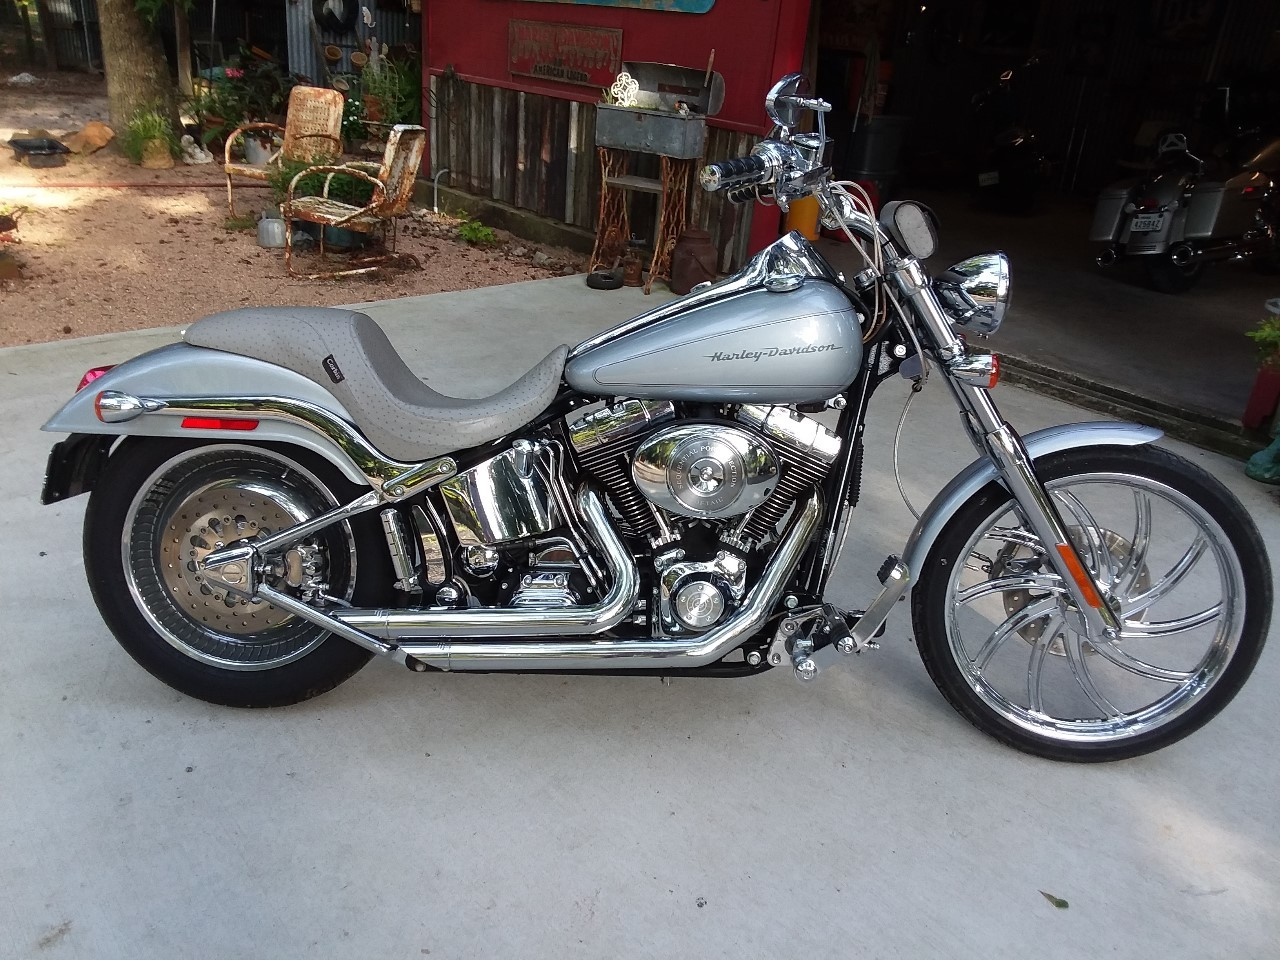 Softail Rocker C For Sale - Harley-Davidson Custom Motorcycles